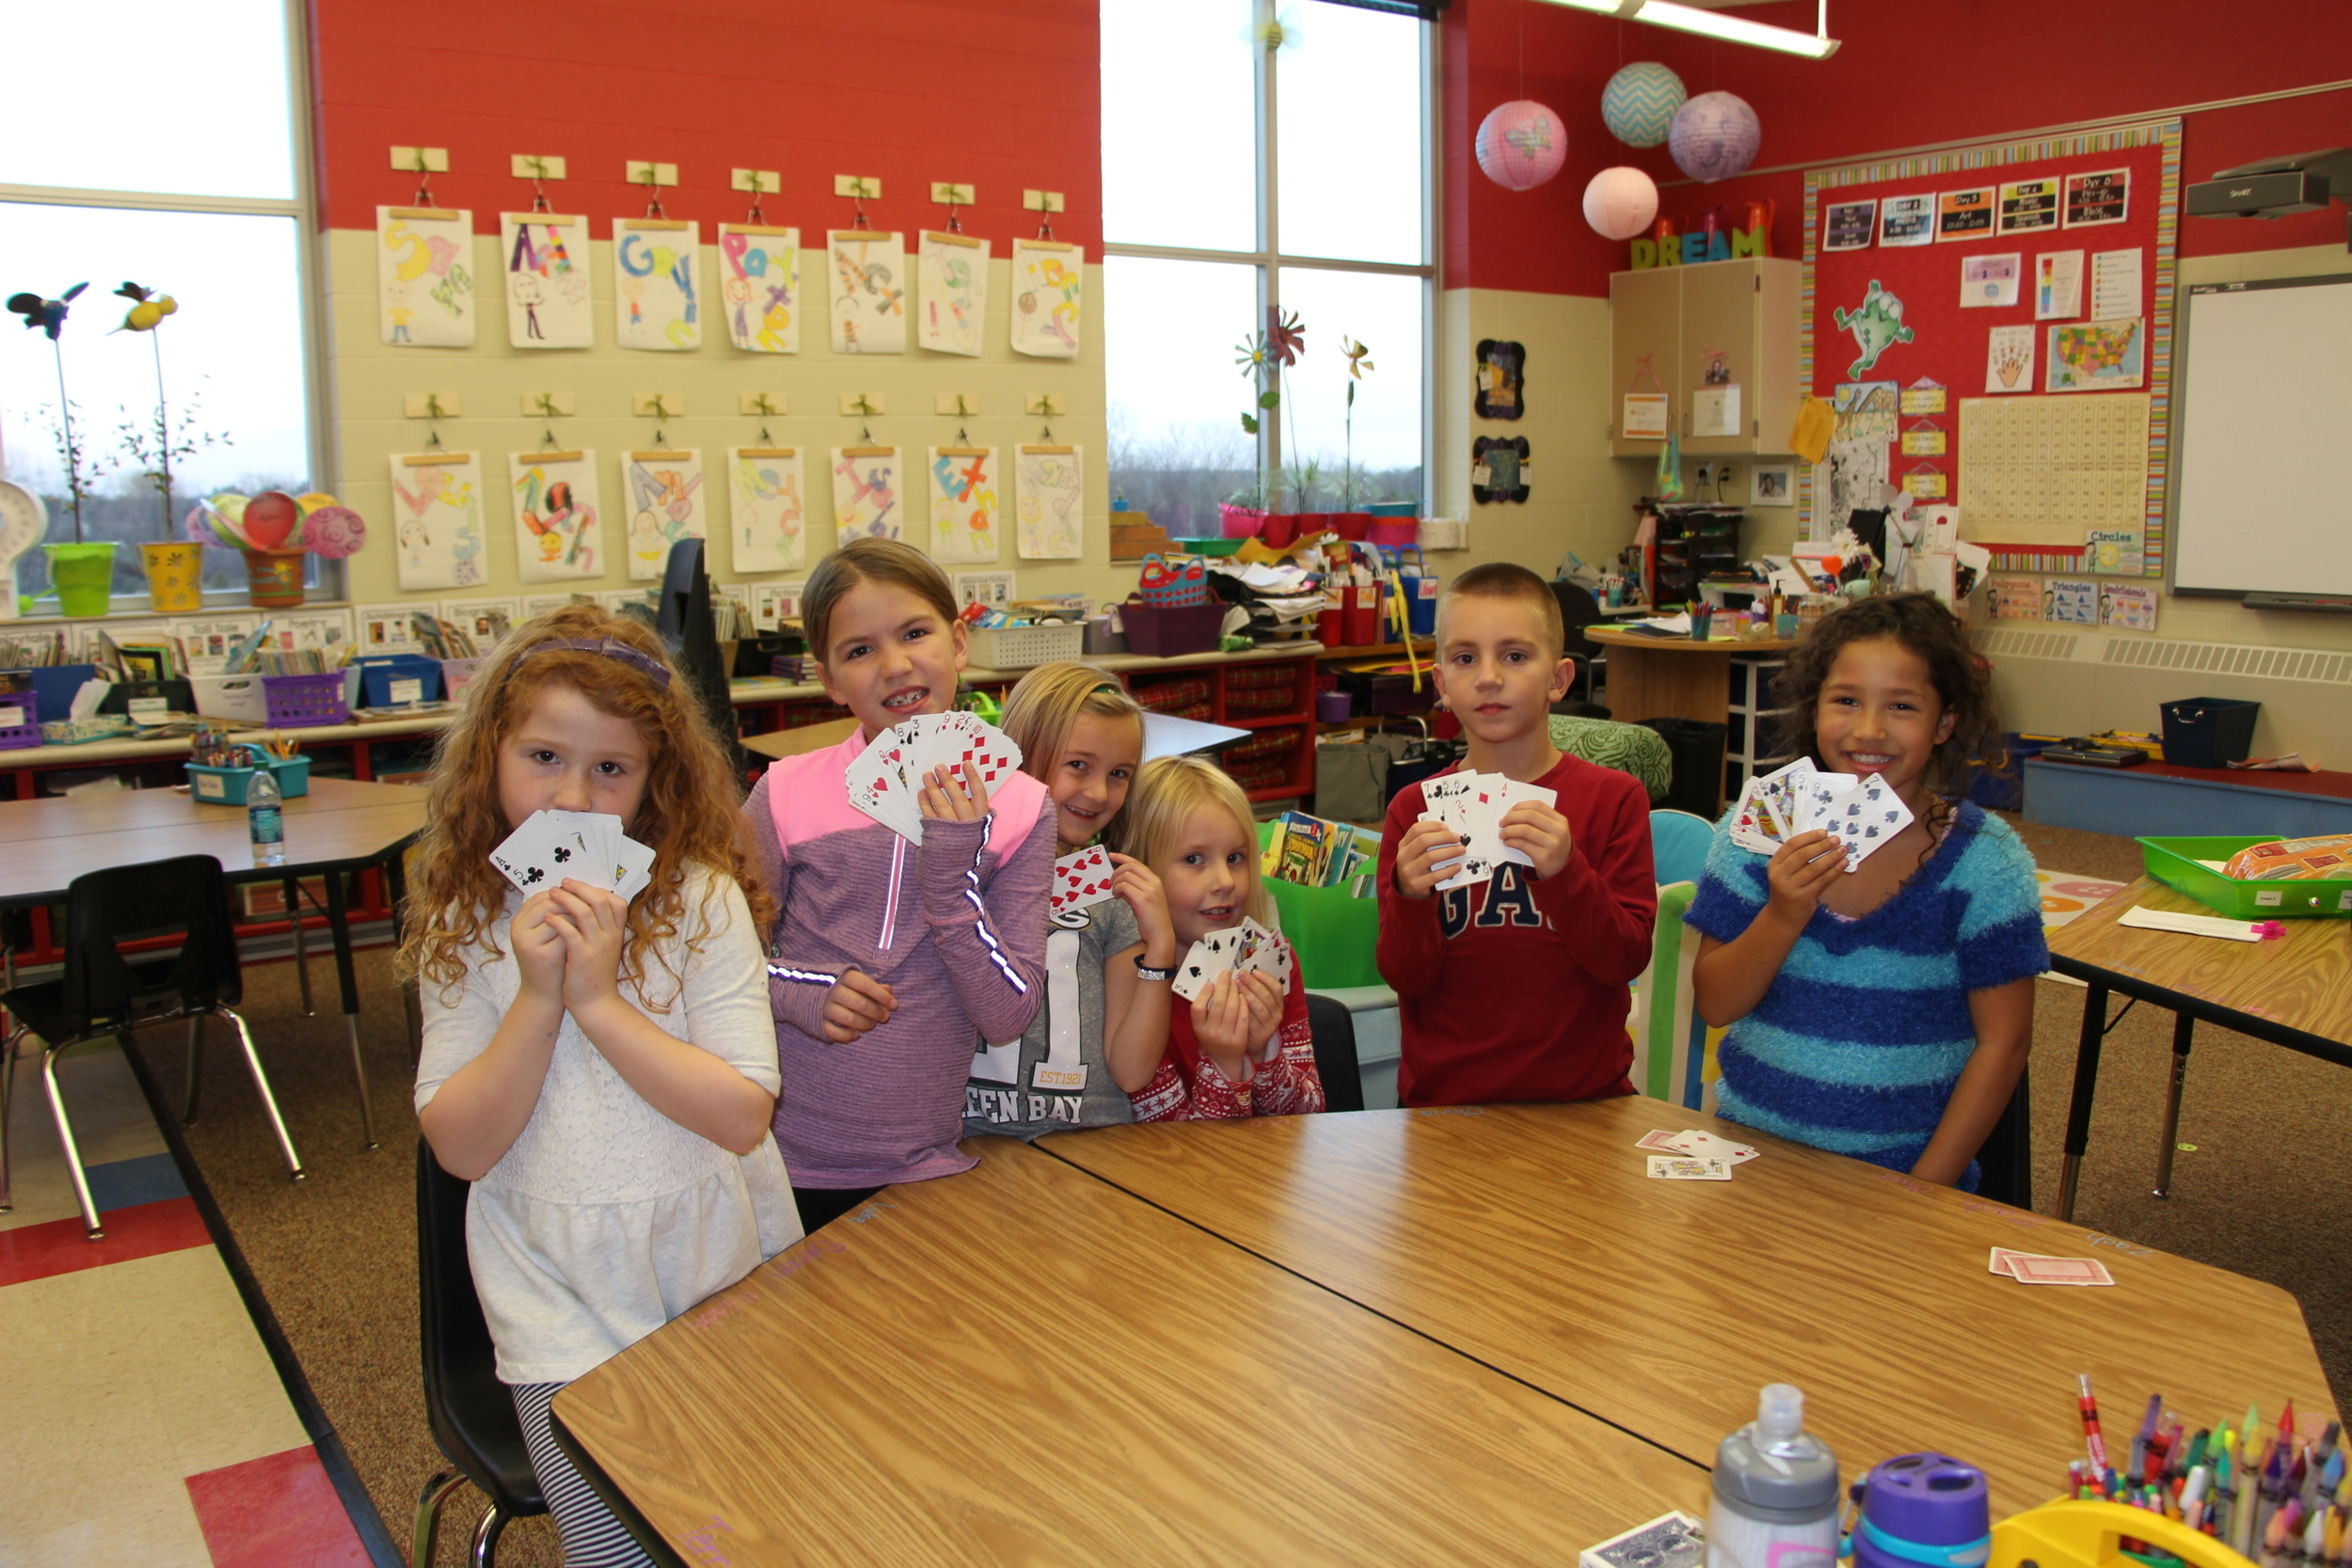 2nd grade card sharks.JPG